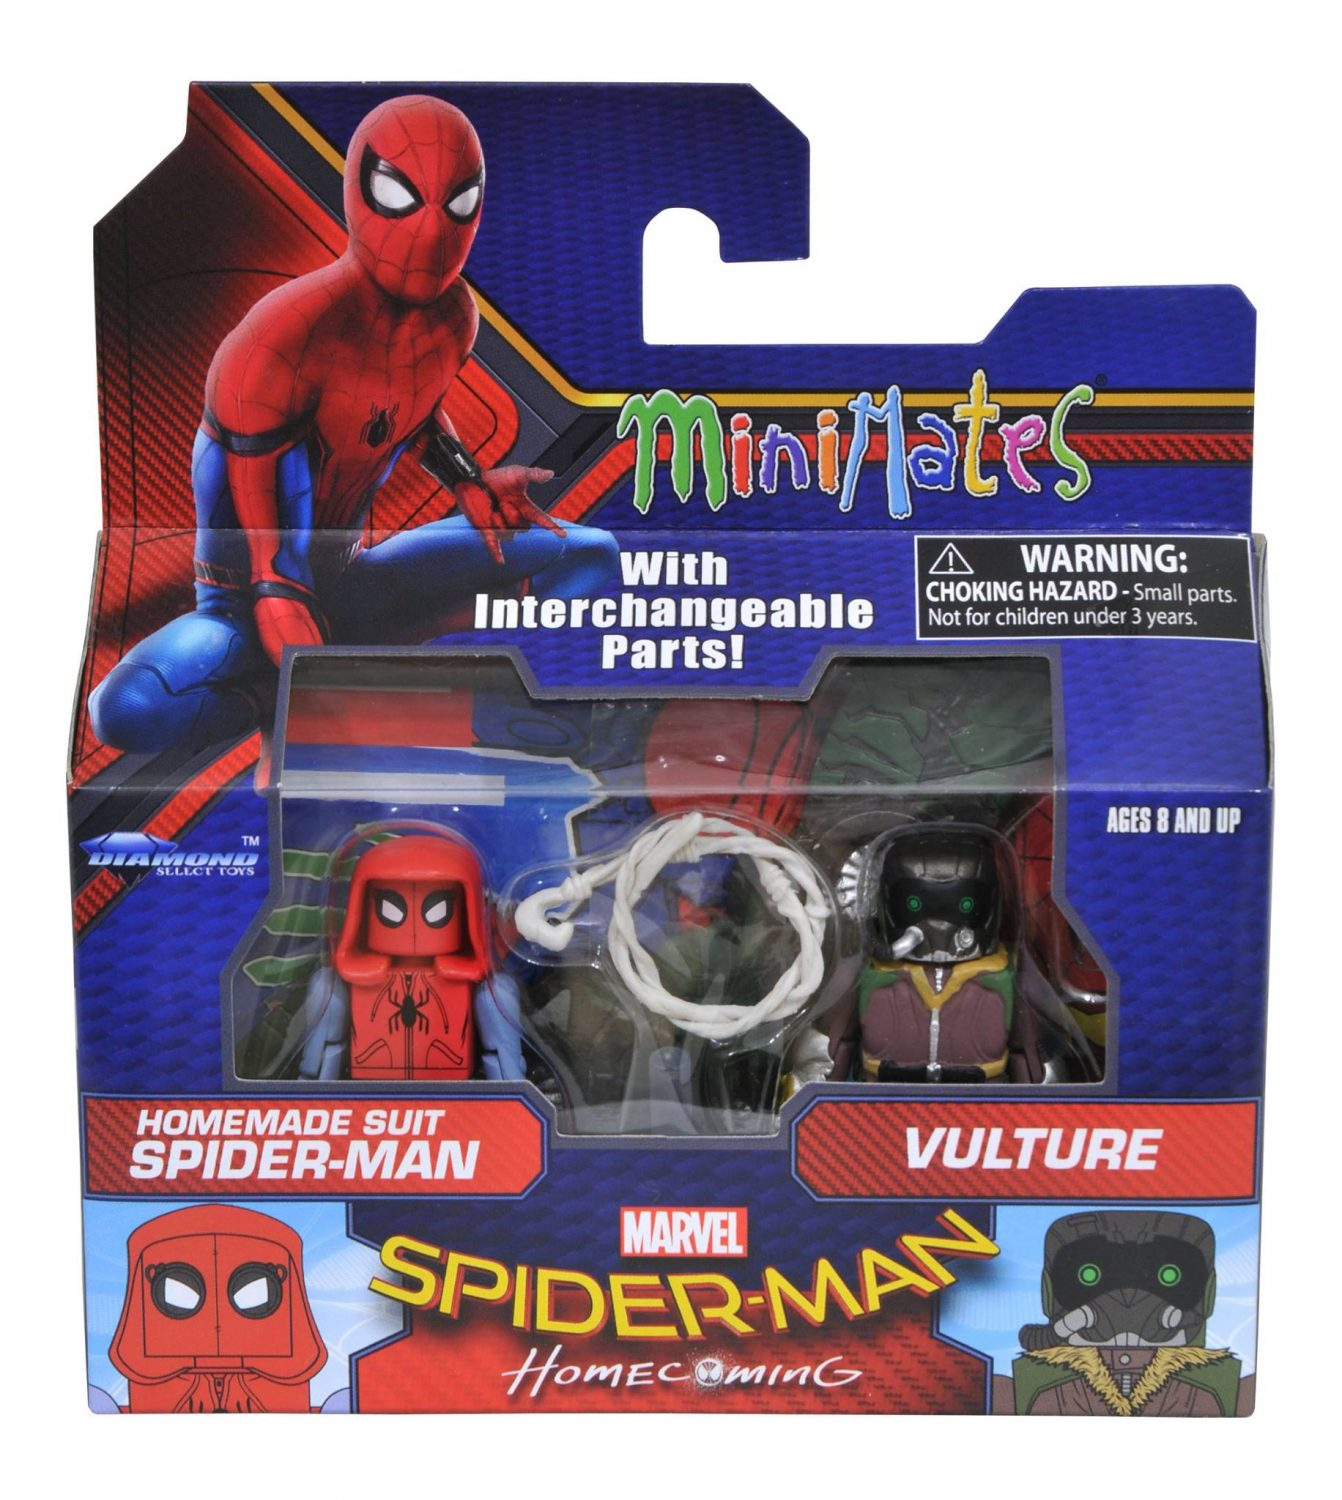 Diamond Select Toys Spider-Man: Homecoming Minimates Official Packaging Images